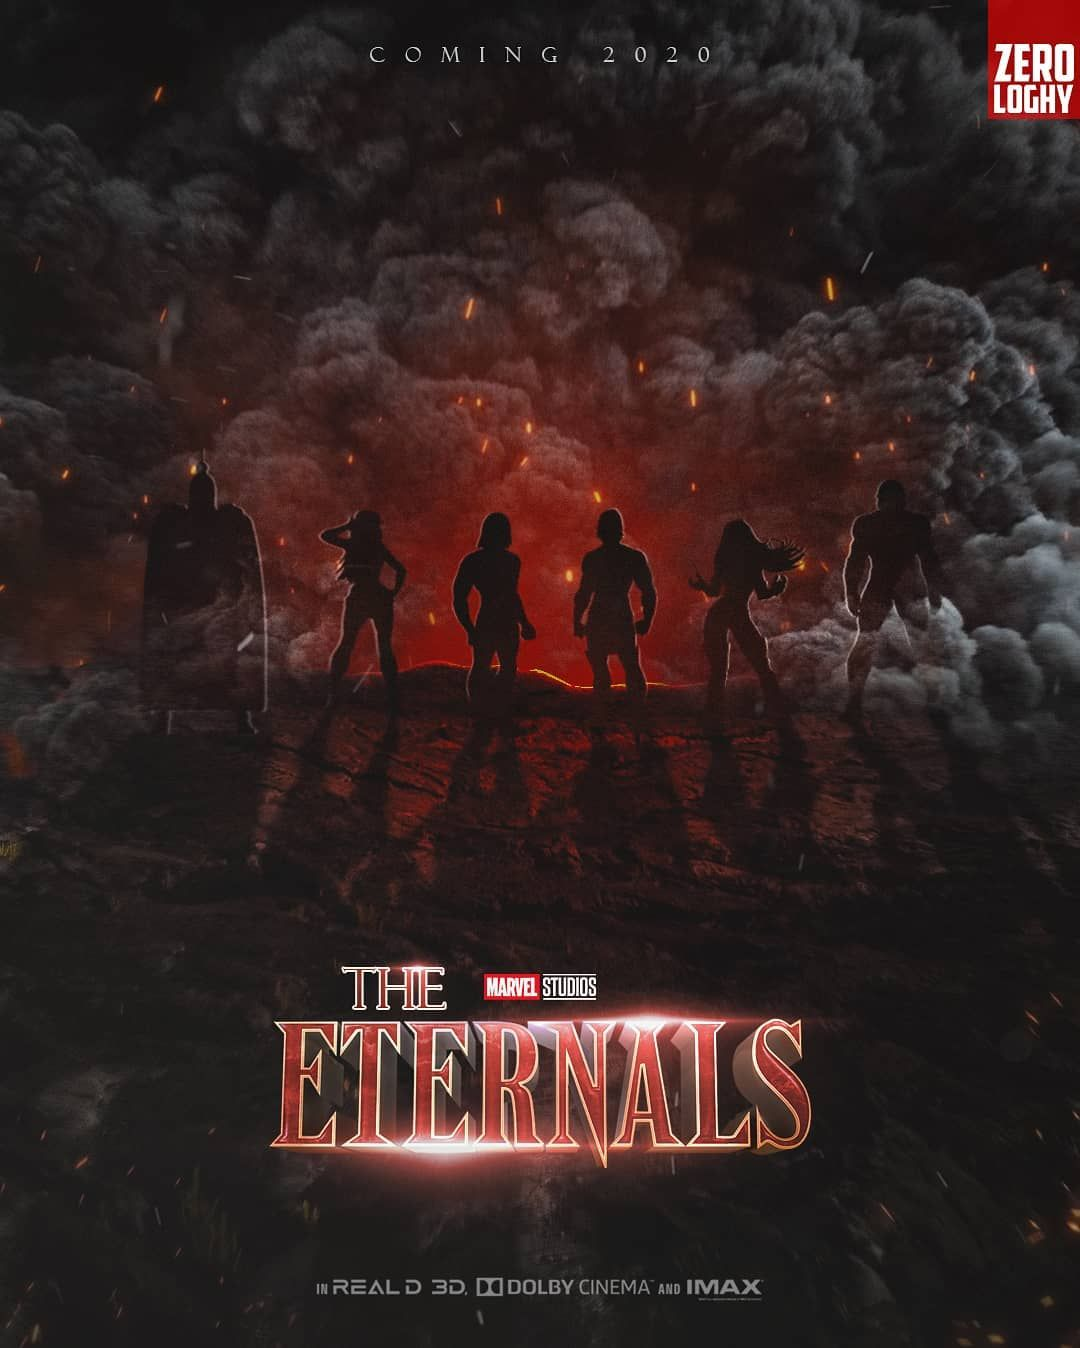 The Eternals   Coming 2020 Follow zerologhy for more 1080x1348